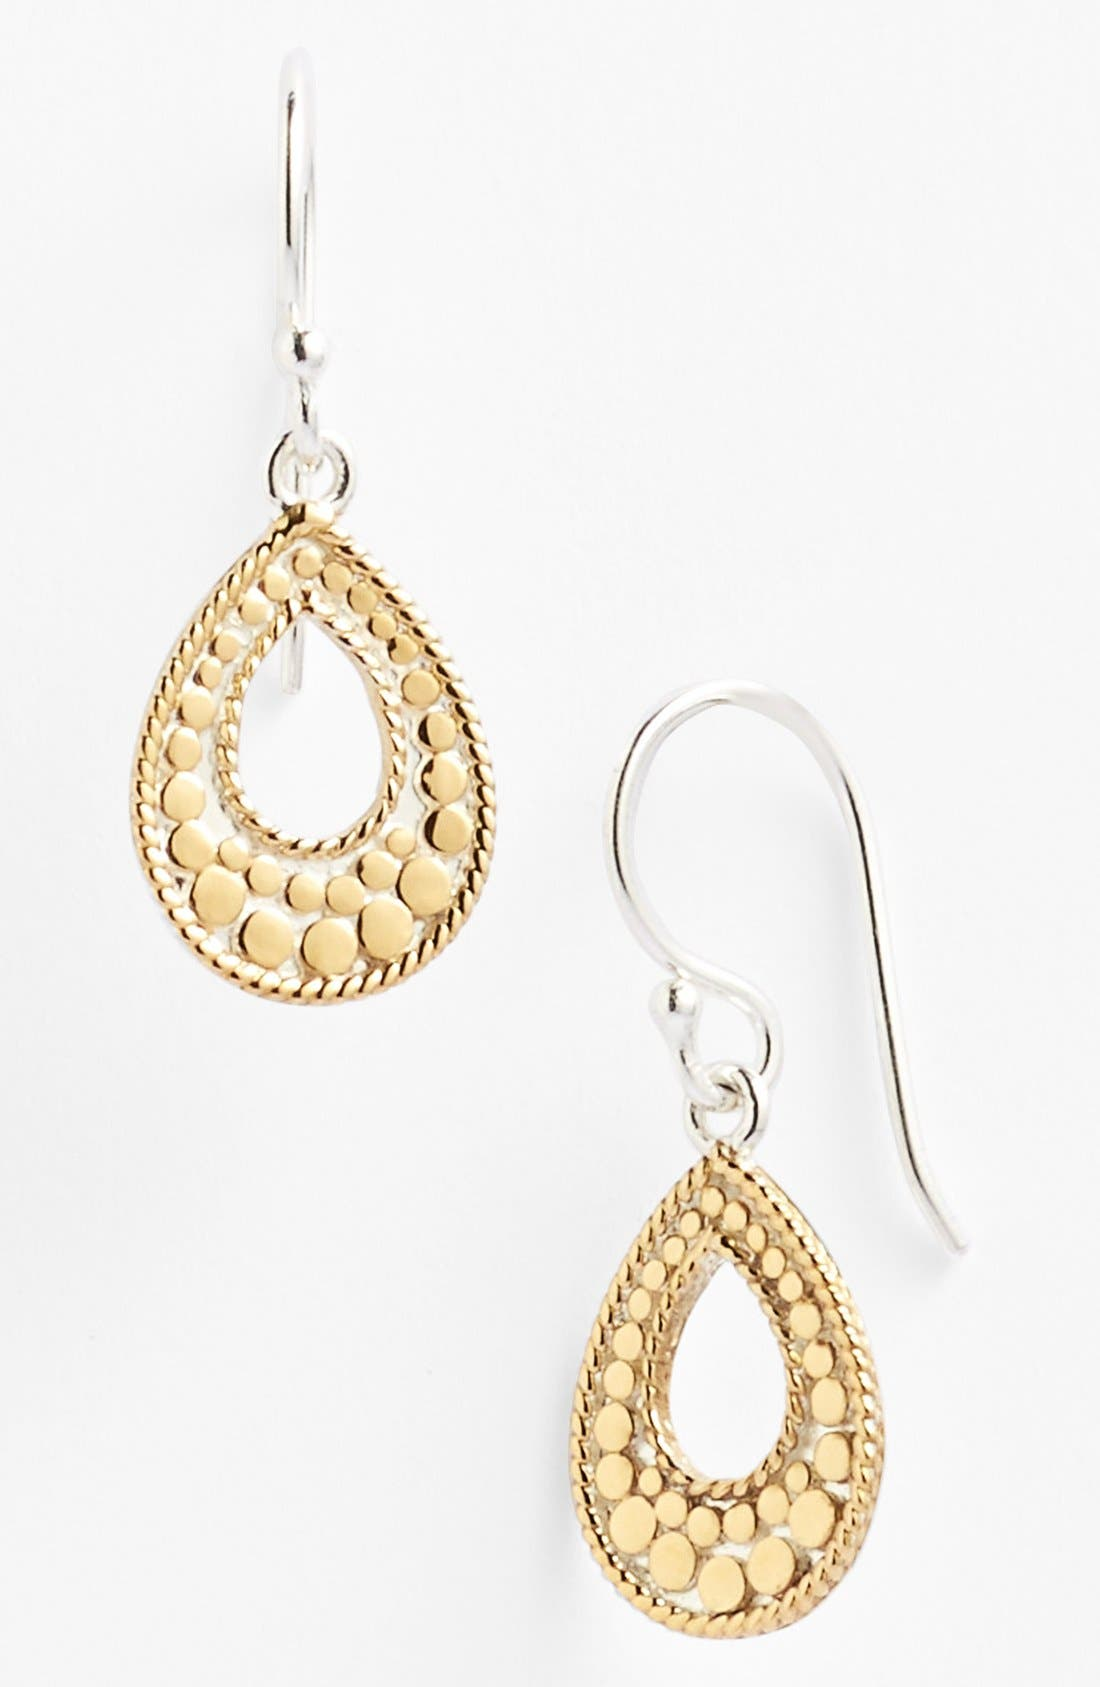 Main Image - Anna Beck 'Timor' Small Teardrop Earrings